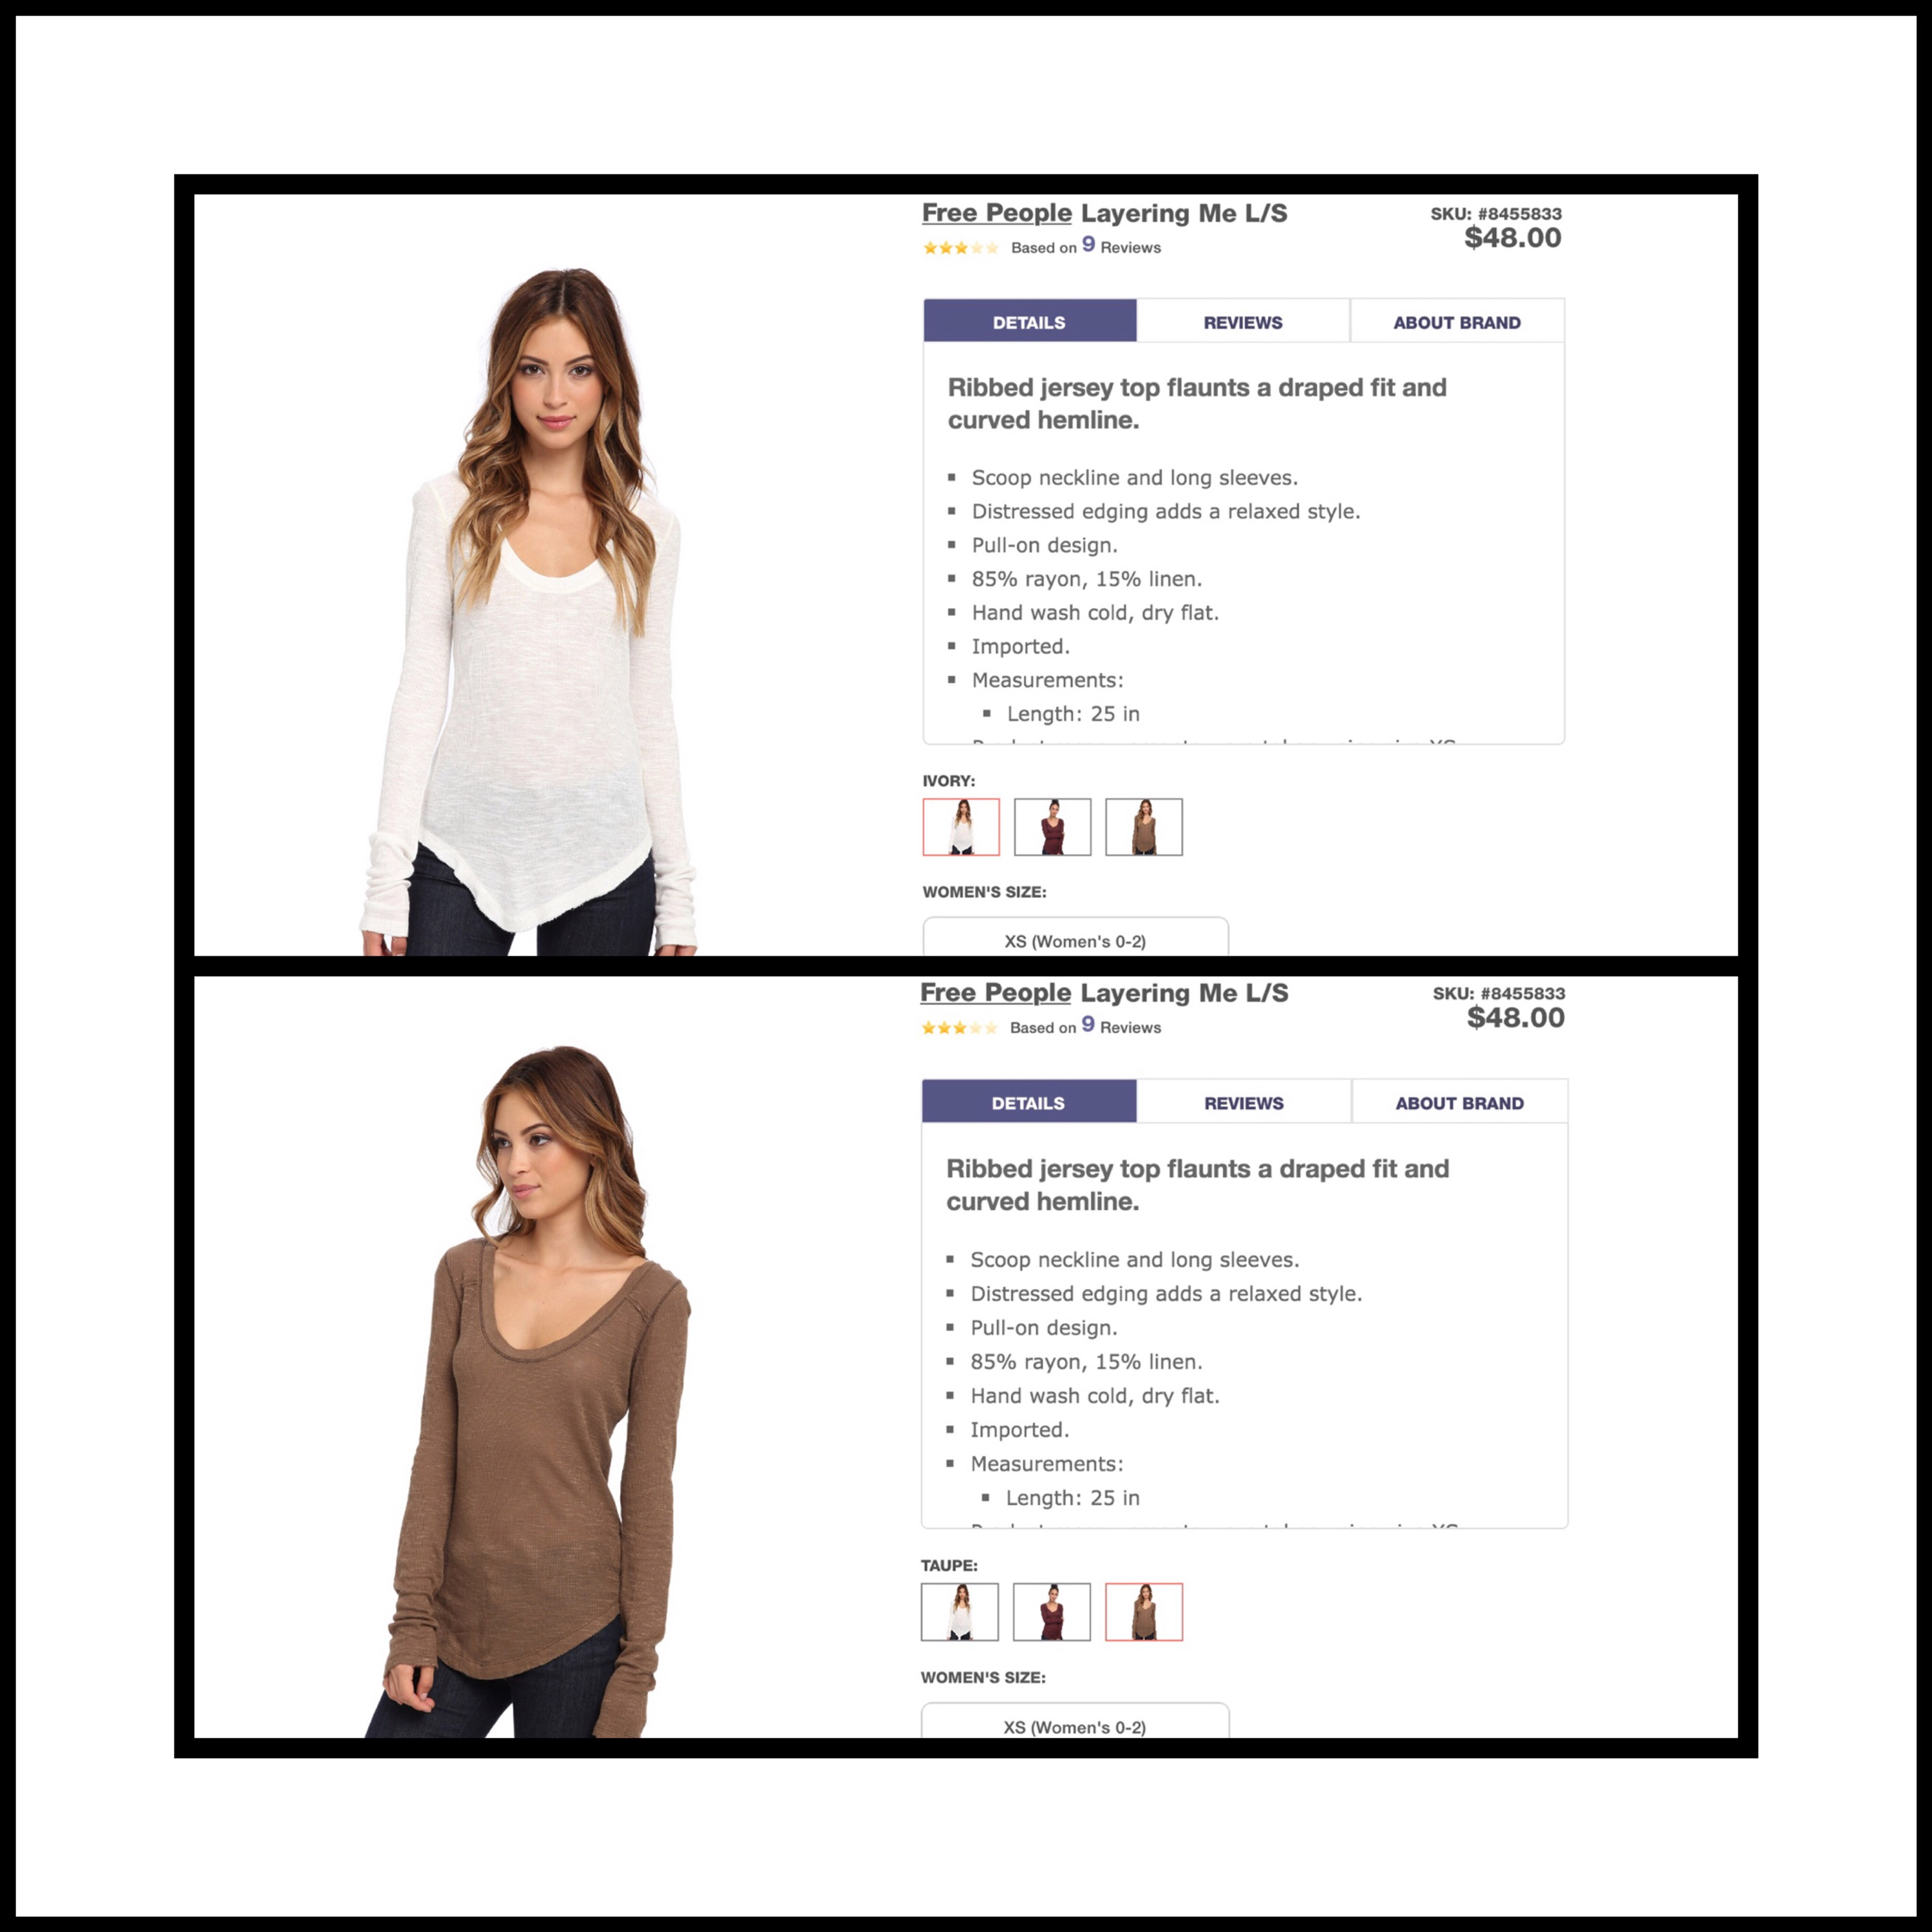 This extremely lightweight 'undershirt' is one of my absolute favorite layering pieces!!